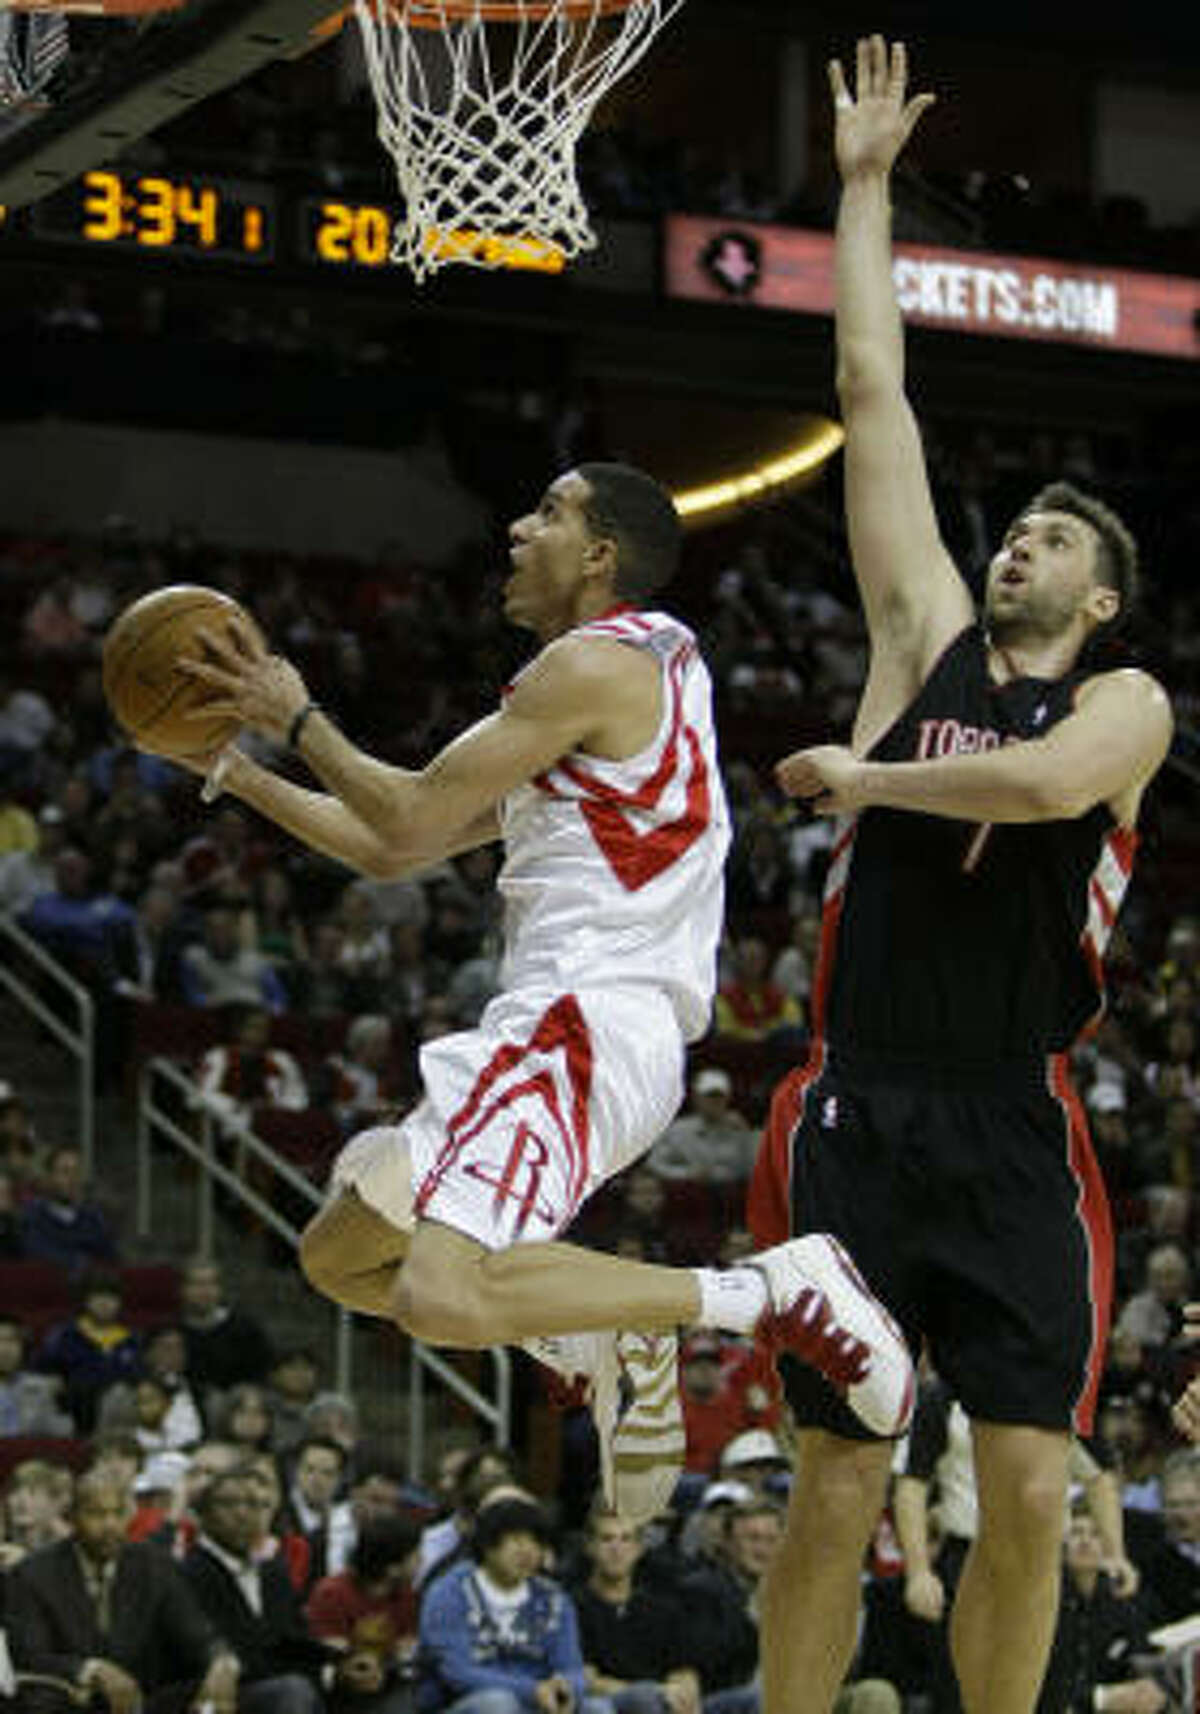 Kevin Martin leaps past Raptors center Andrea Bargnani for a layup. Martin scored 28 points on 9-for-16 shooting including five 3-pointers.